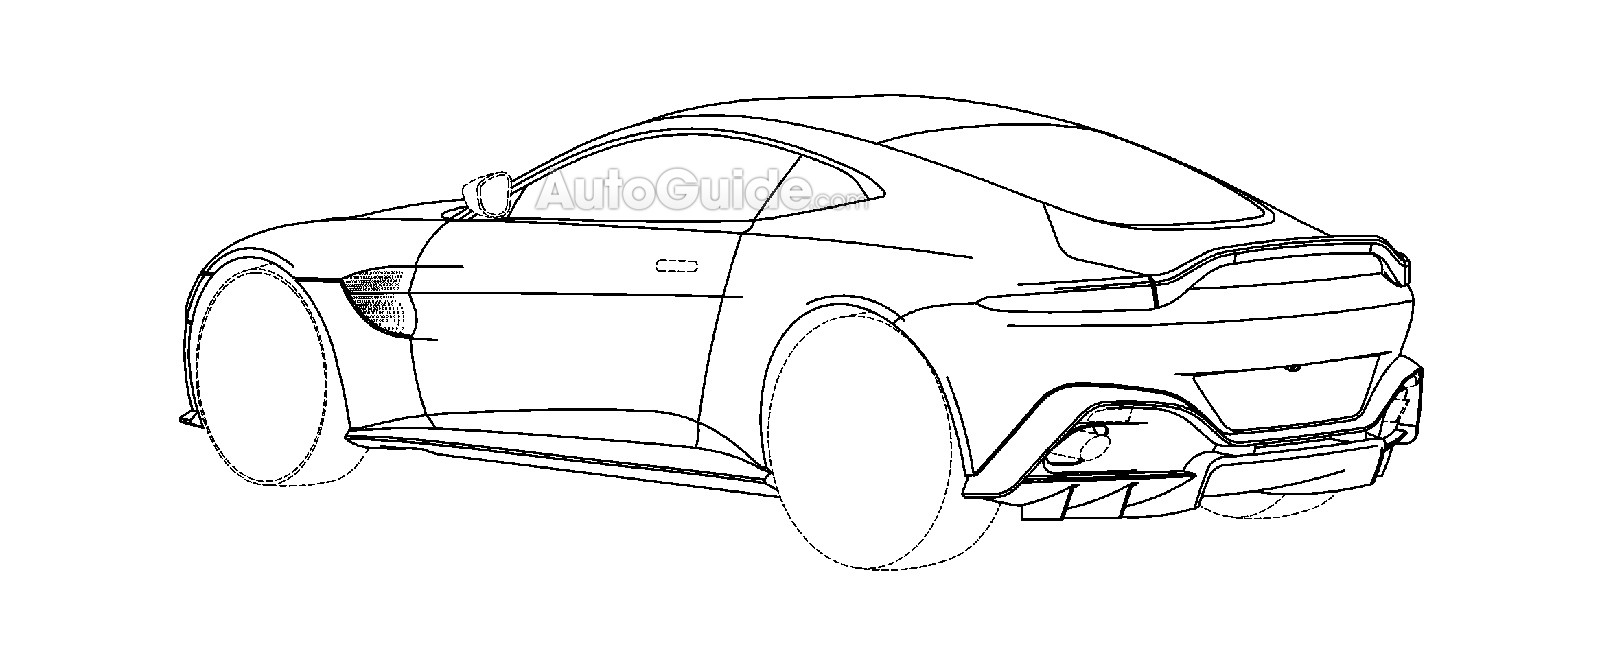 Patent Drawings Reveal Possible Design Of 2018 Aston Martin Vantage 118987 also 1759 Triptiek Van 3 Ex Libris Kuifje En De Secundaire Personages in addition New Maserati Levante Interior Revealed Tablet Like Infotainment System Included 104818 in addition 1759 Triptych Of 3 Ex Libris Tintin And The Secondary Characters also A Look At The Latest Bond Car. on new aston martin db10